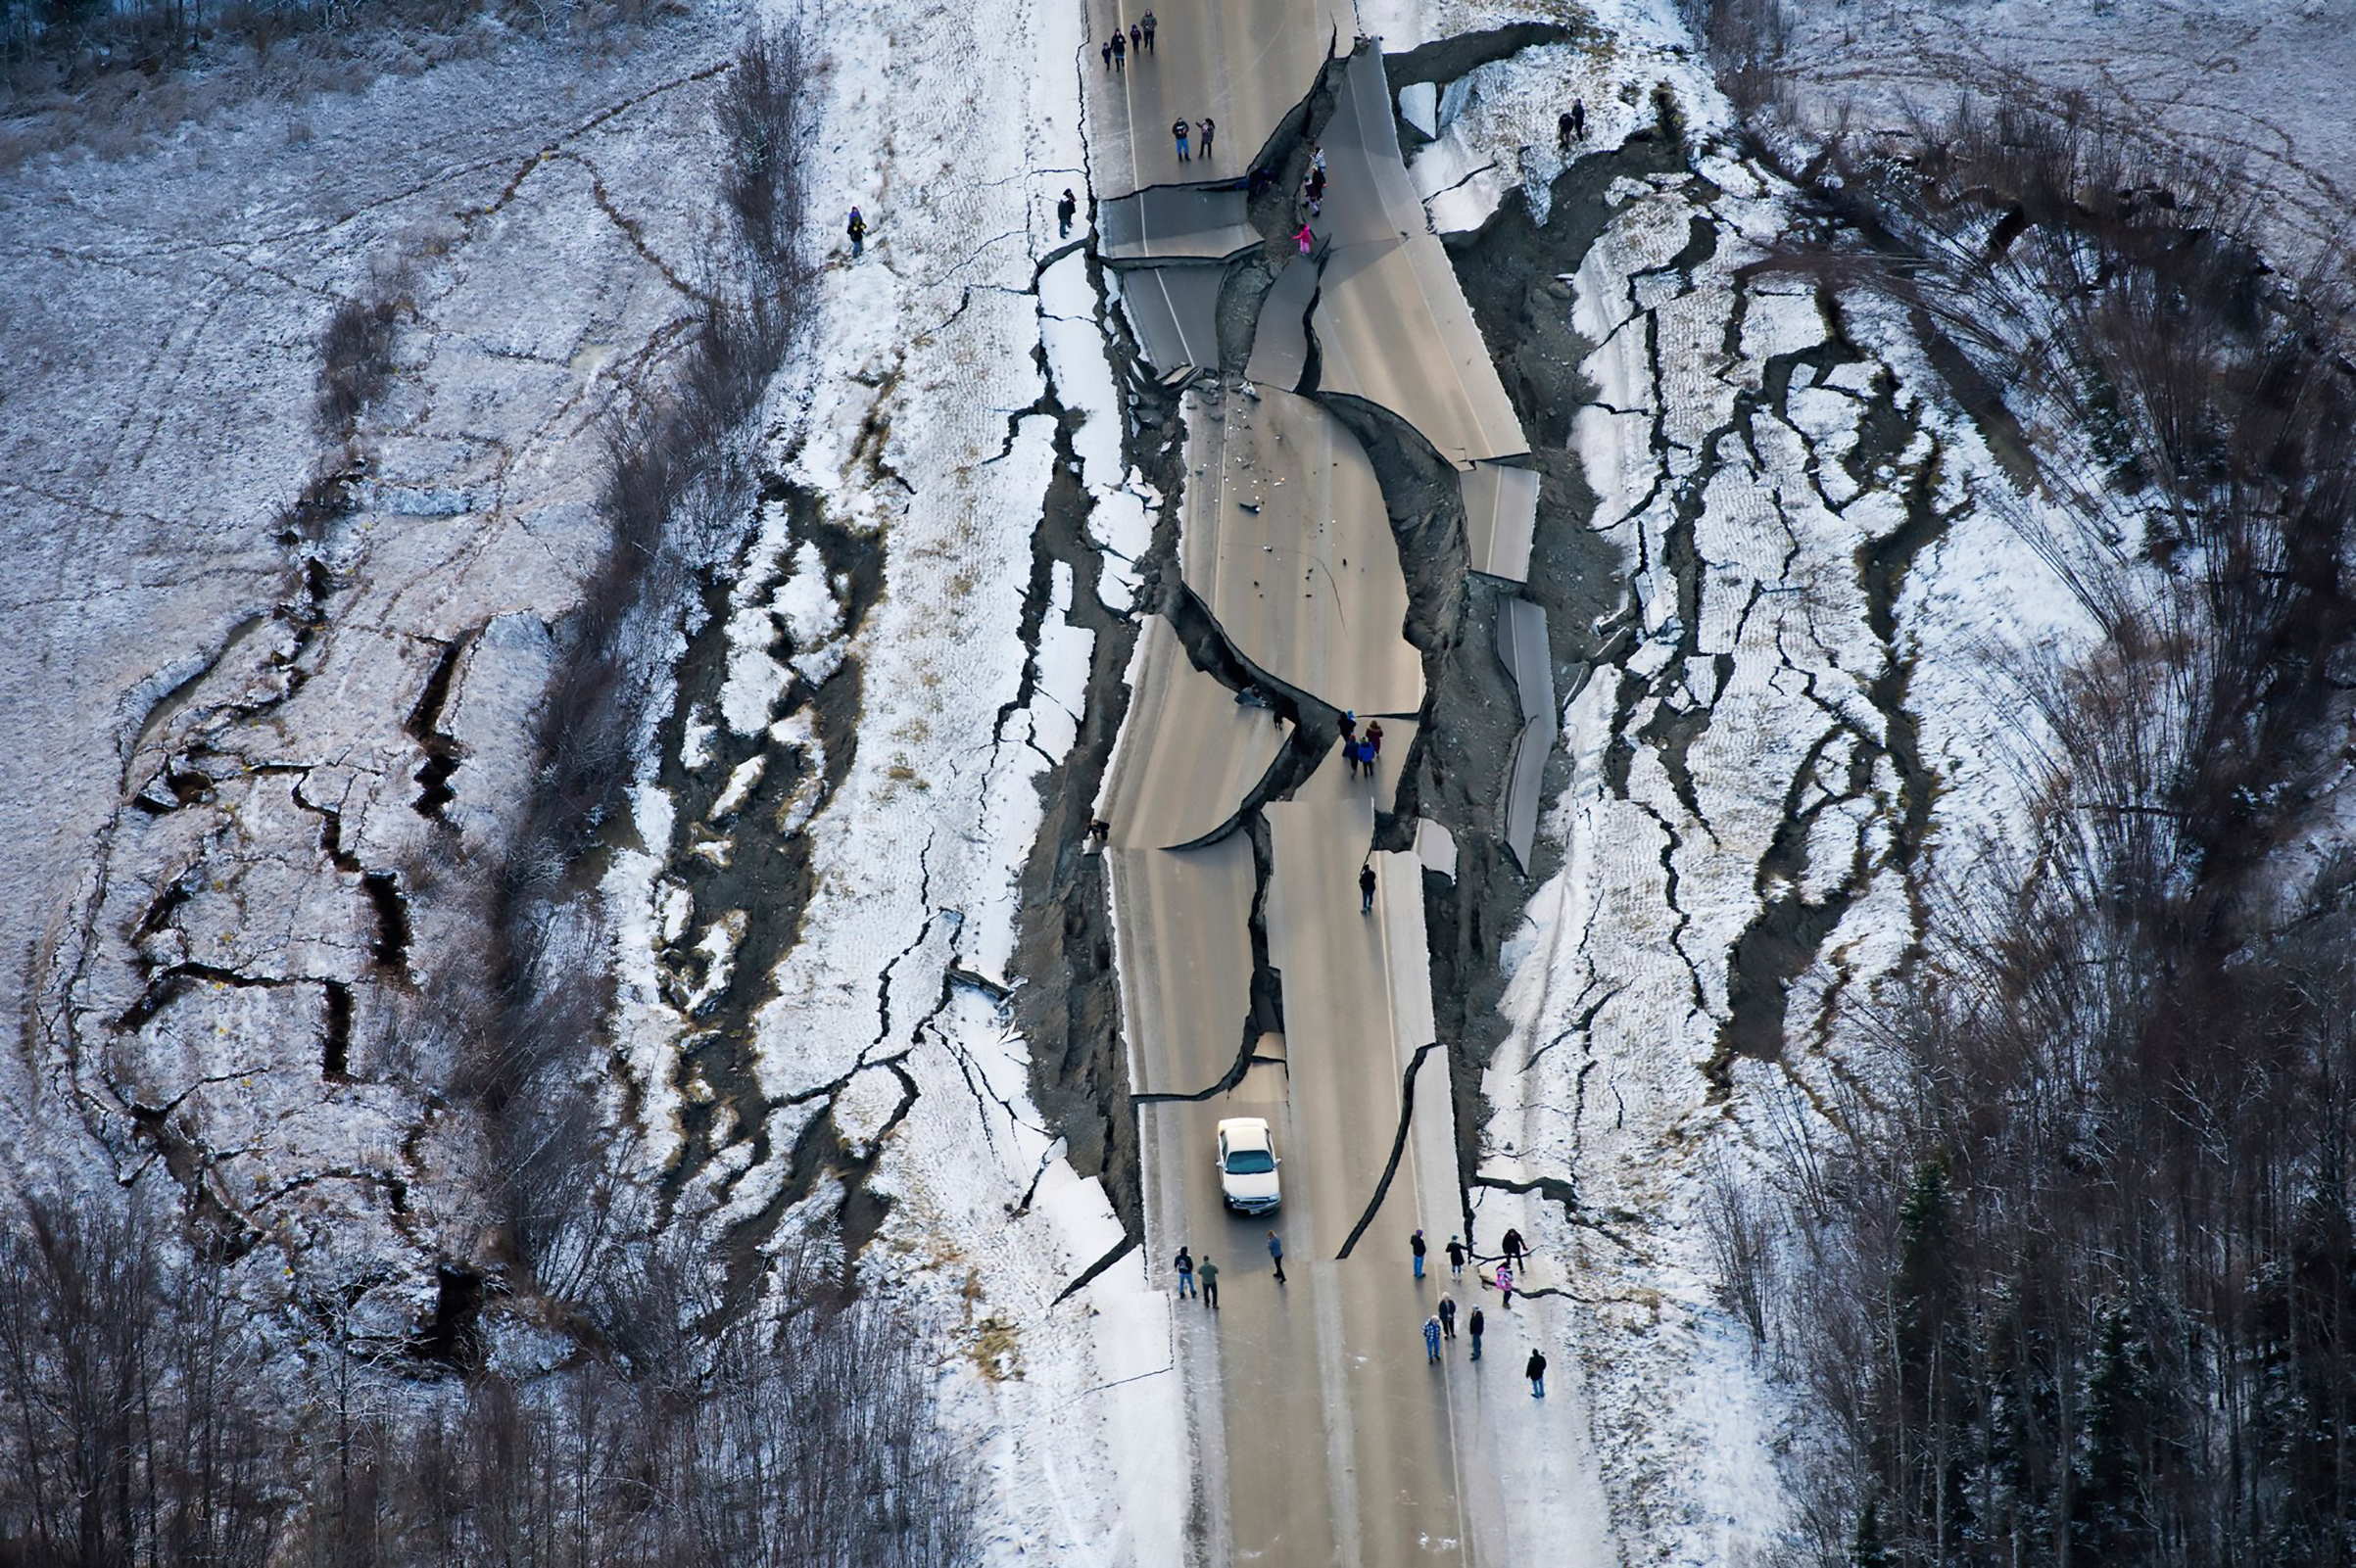 Earthquake damage on Vine Road, near Wasilla, Alaska, on Nov. 30, 2018.